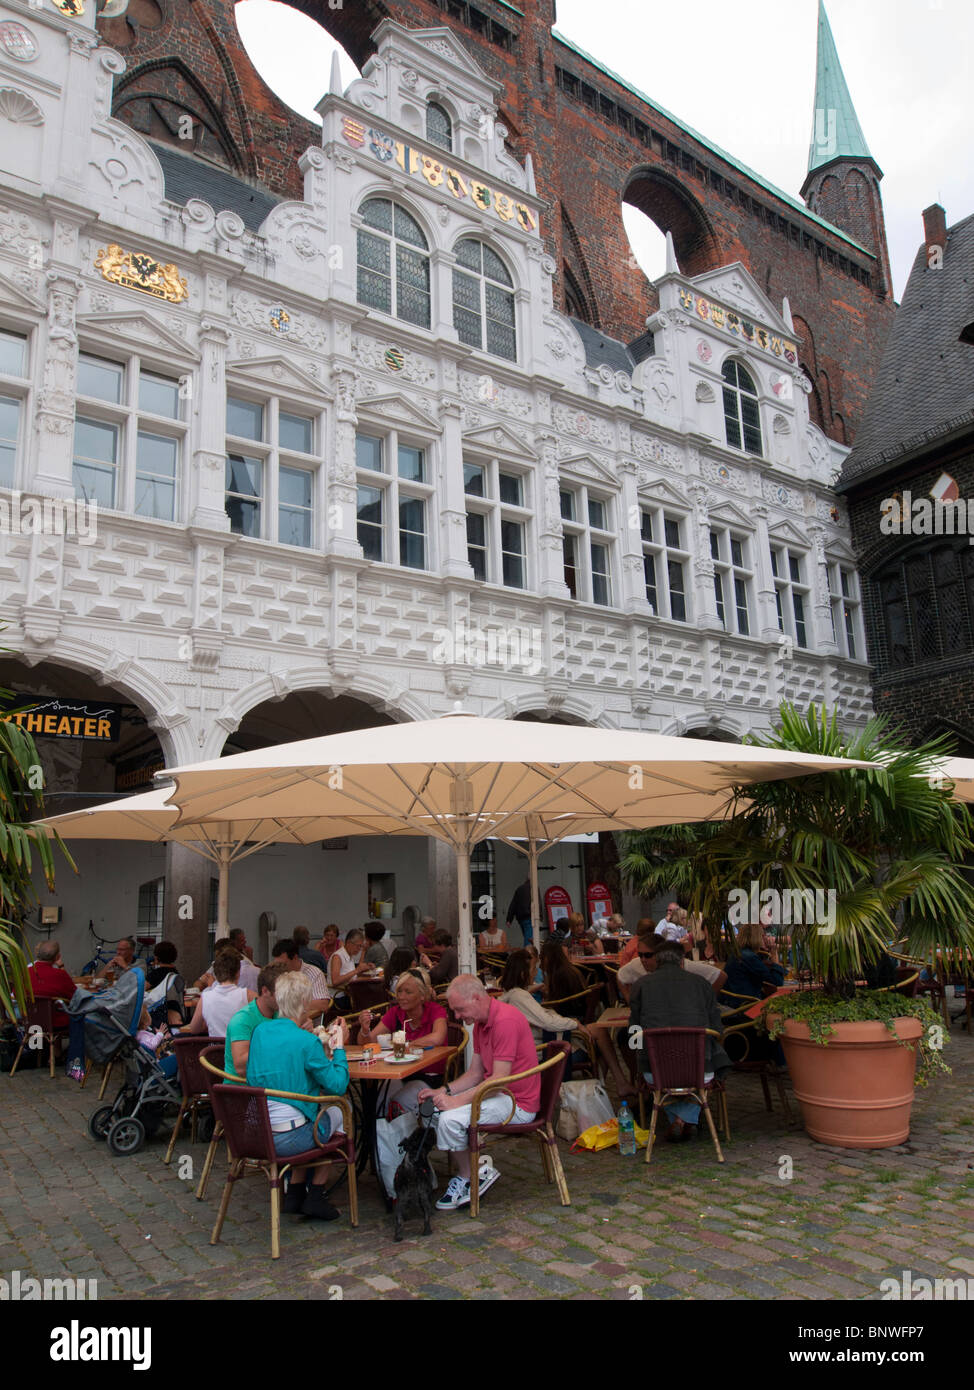 Cafe beside Rathaus or Town Hall  in city of Lubeck in Germany - Stock Image